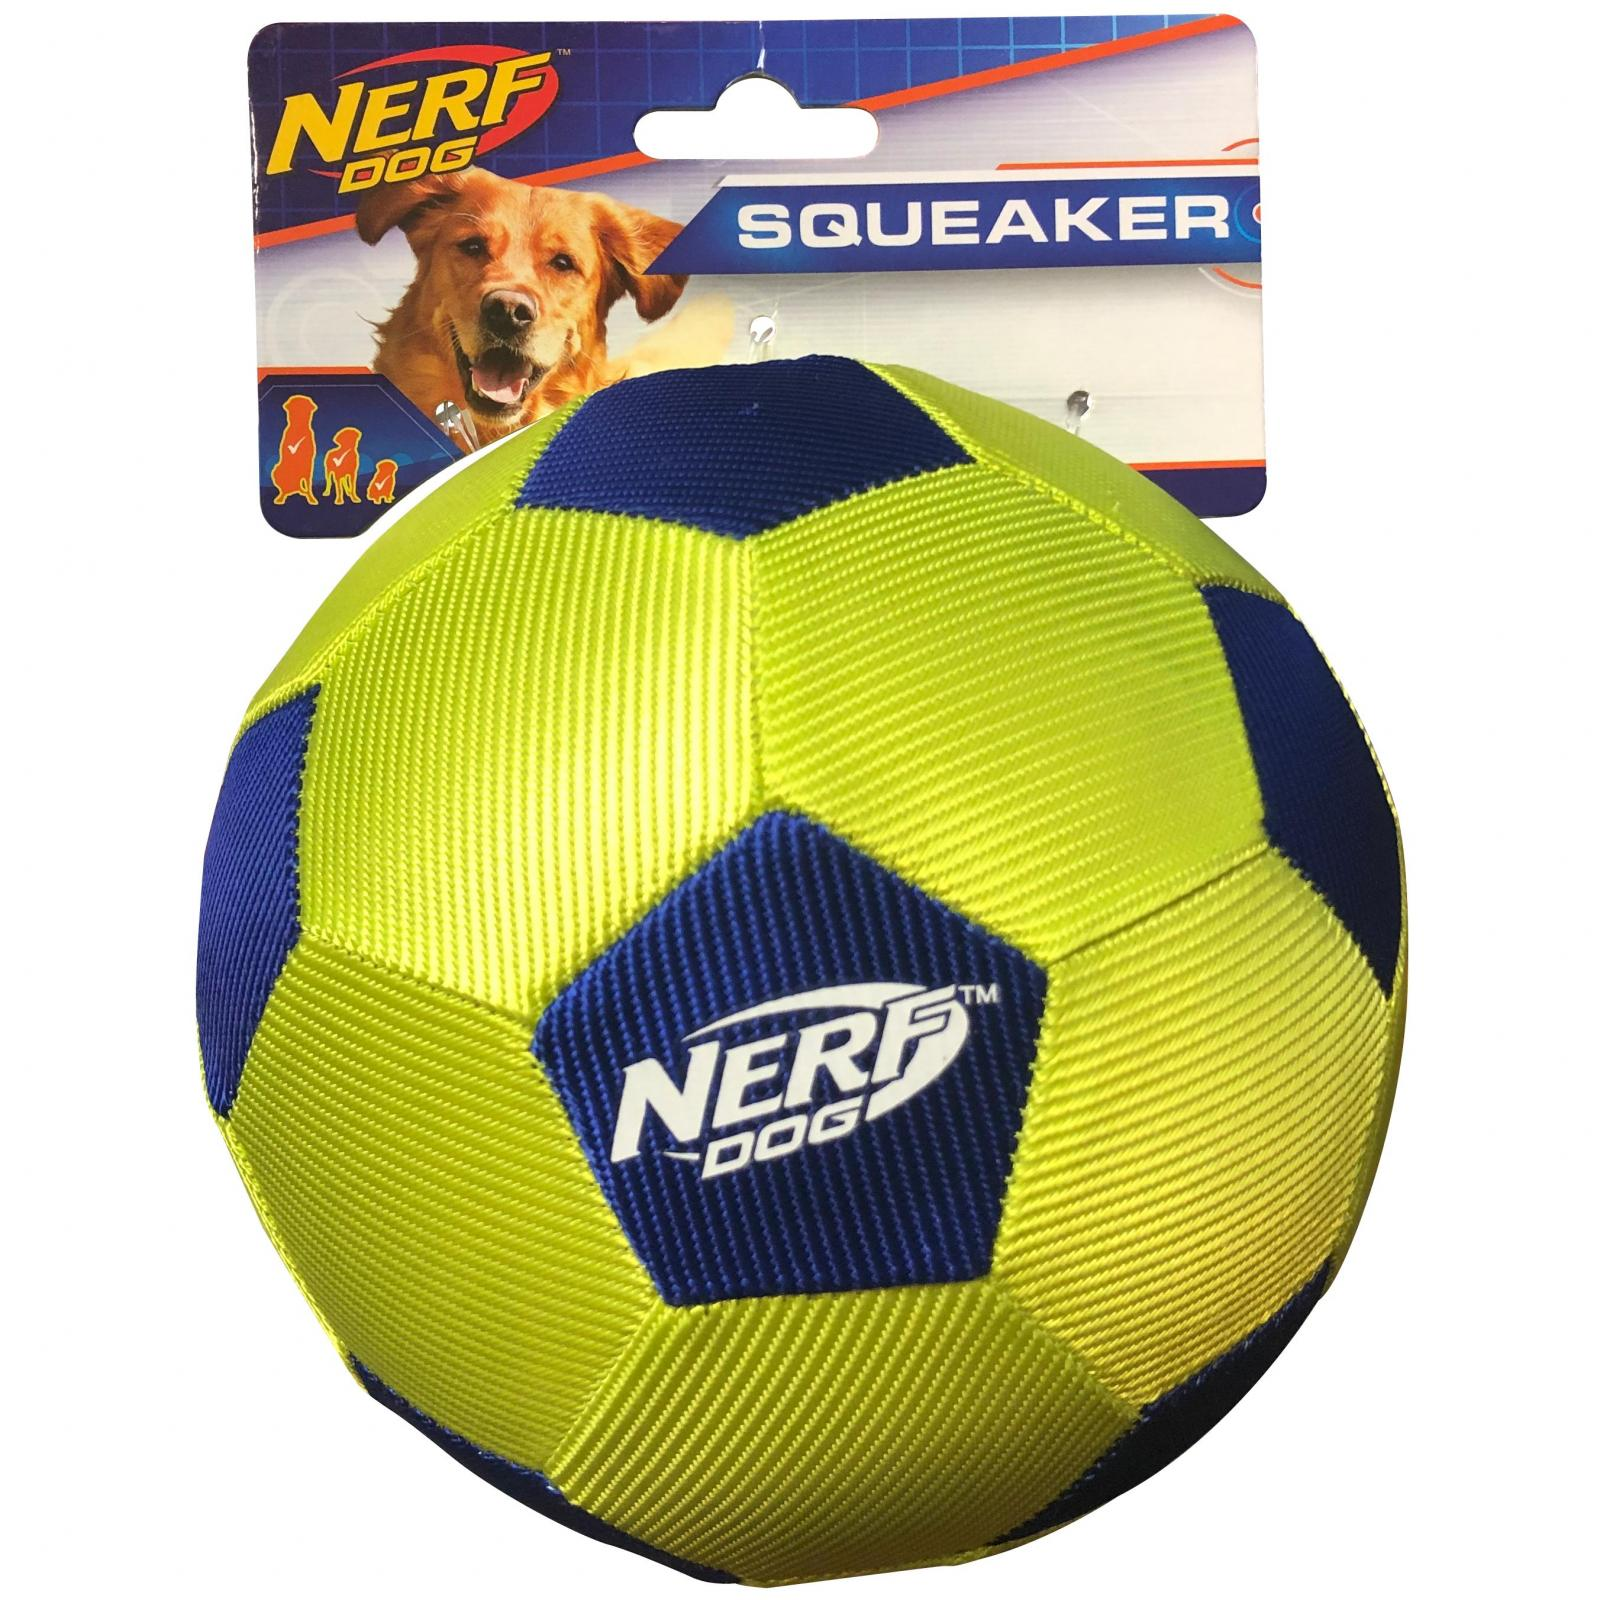 NERF NERF 5in AirTuff Soccer Ball Blue/Green